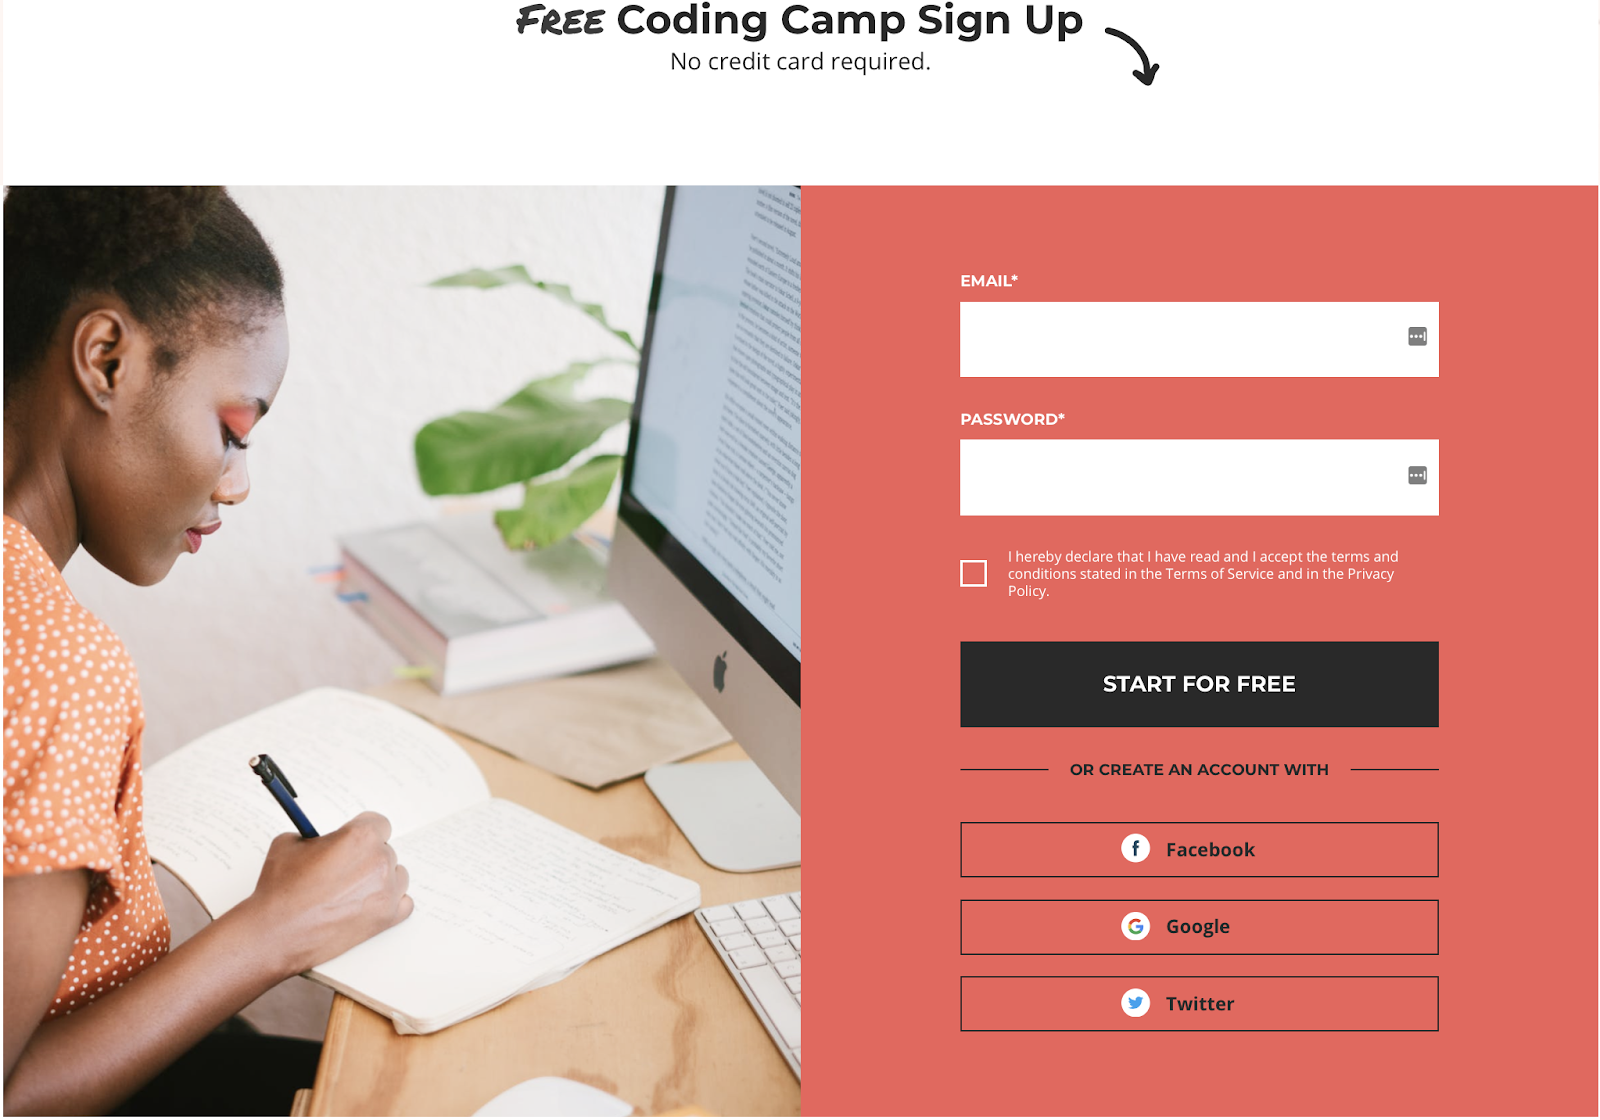 Coding camp signup form for sales intelligence collection